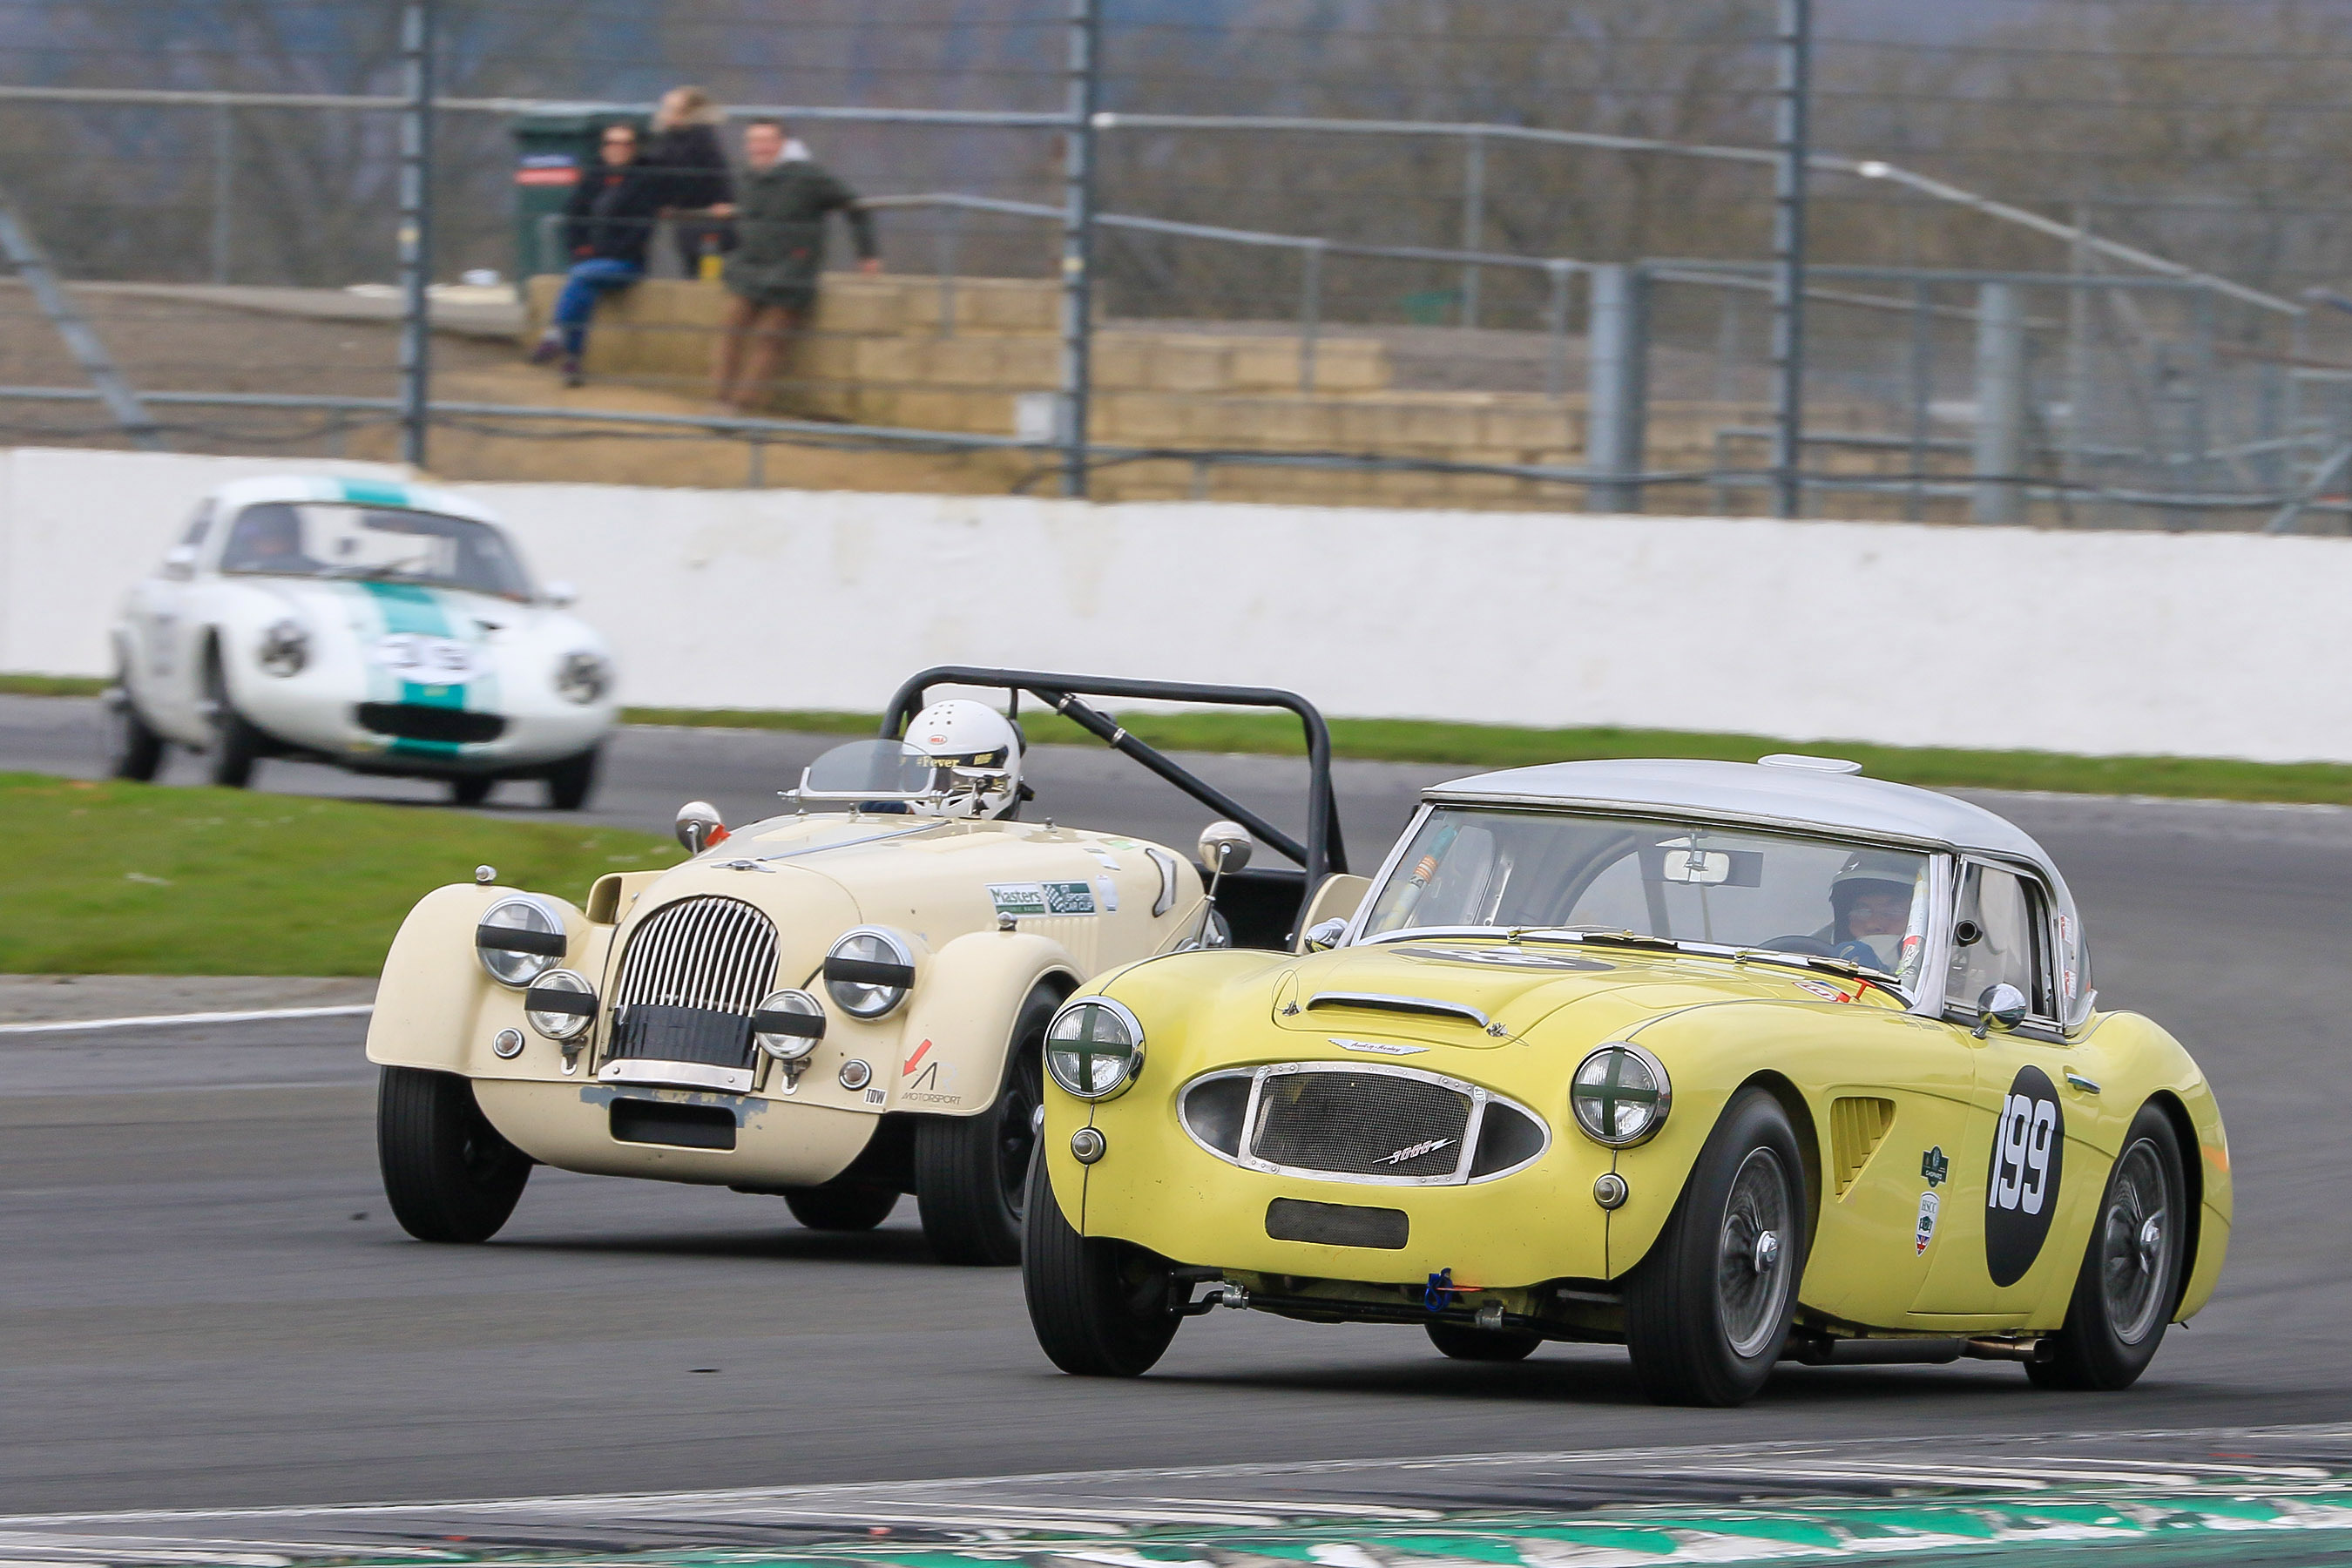 ice race, Audi sending cars and stars to GP Ice Race revival, ClassicCars.com Journal